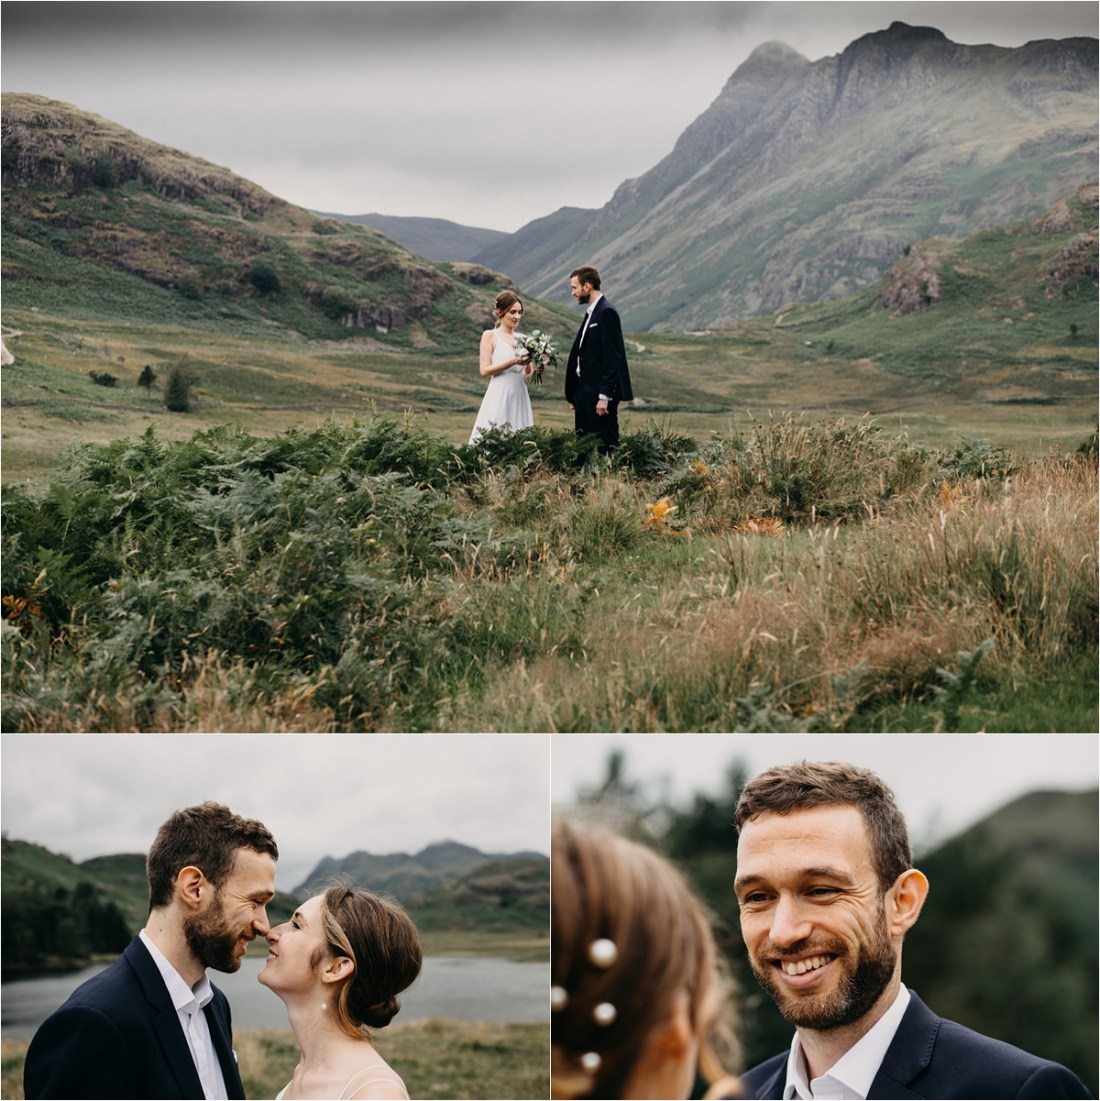 A hiking elopement at Blea Tarn in the Lake District in England. Photos by Unfurl Photography